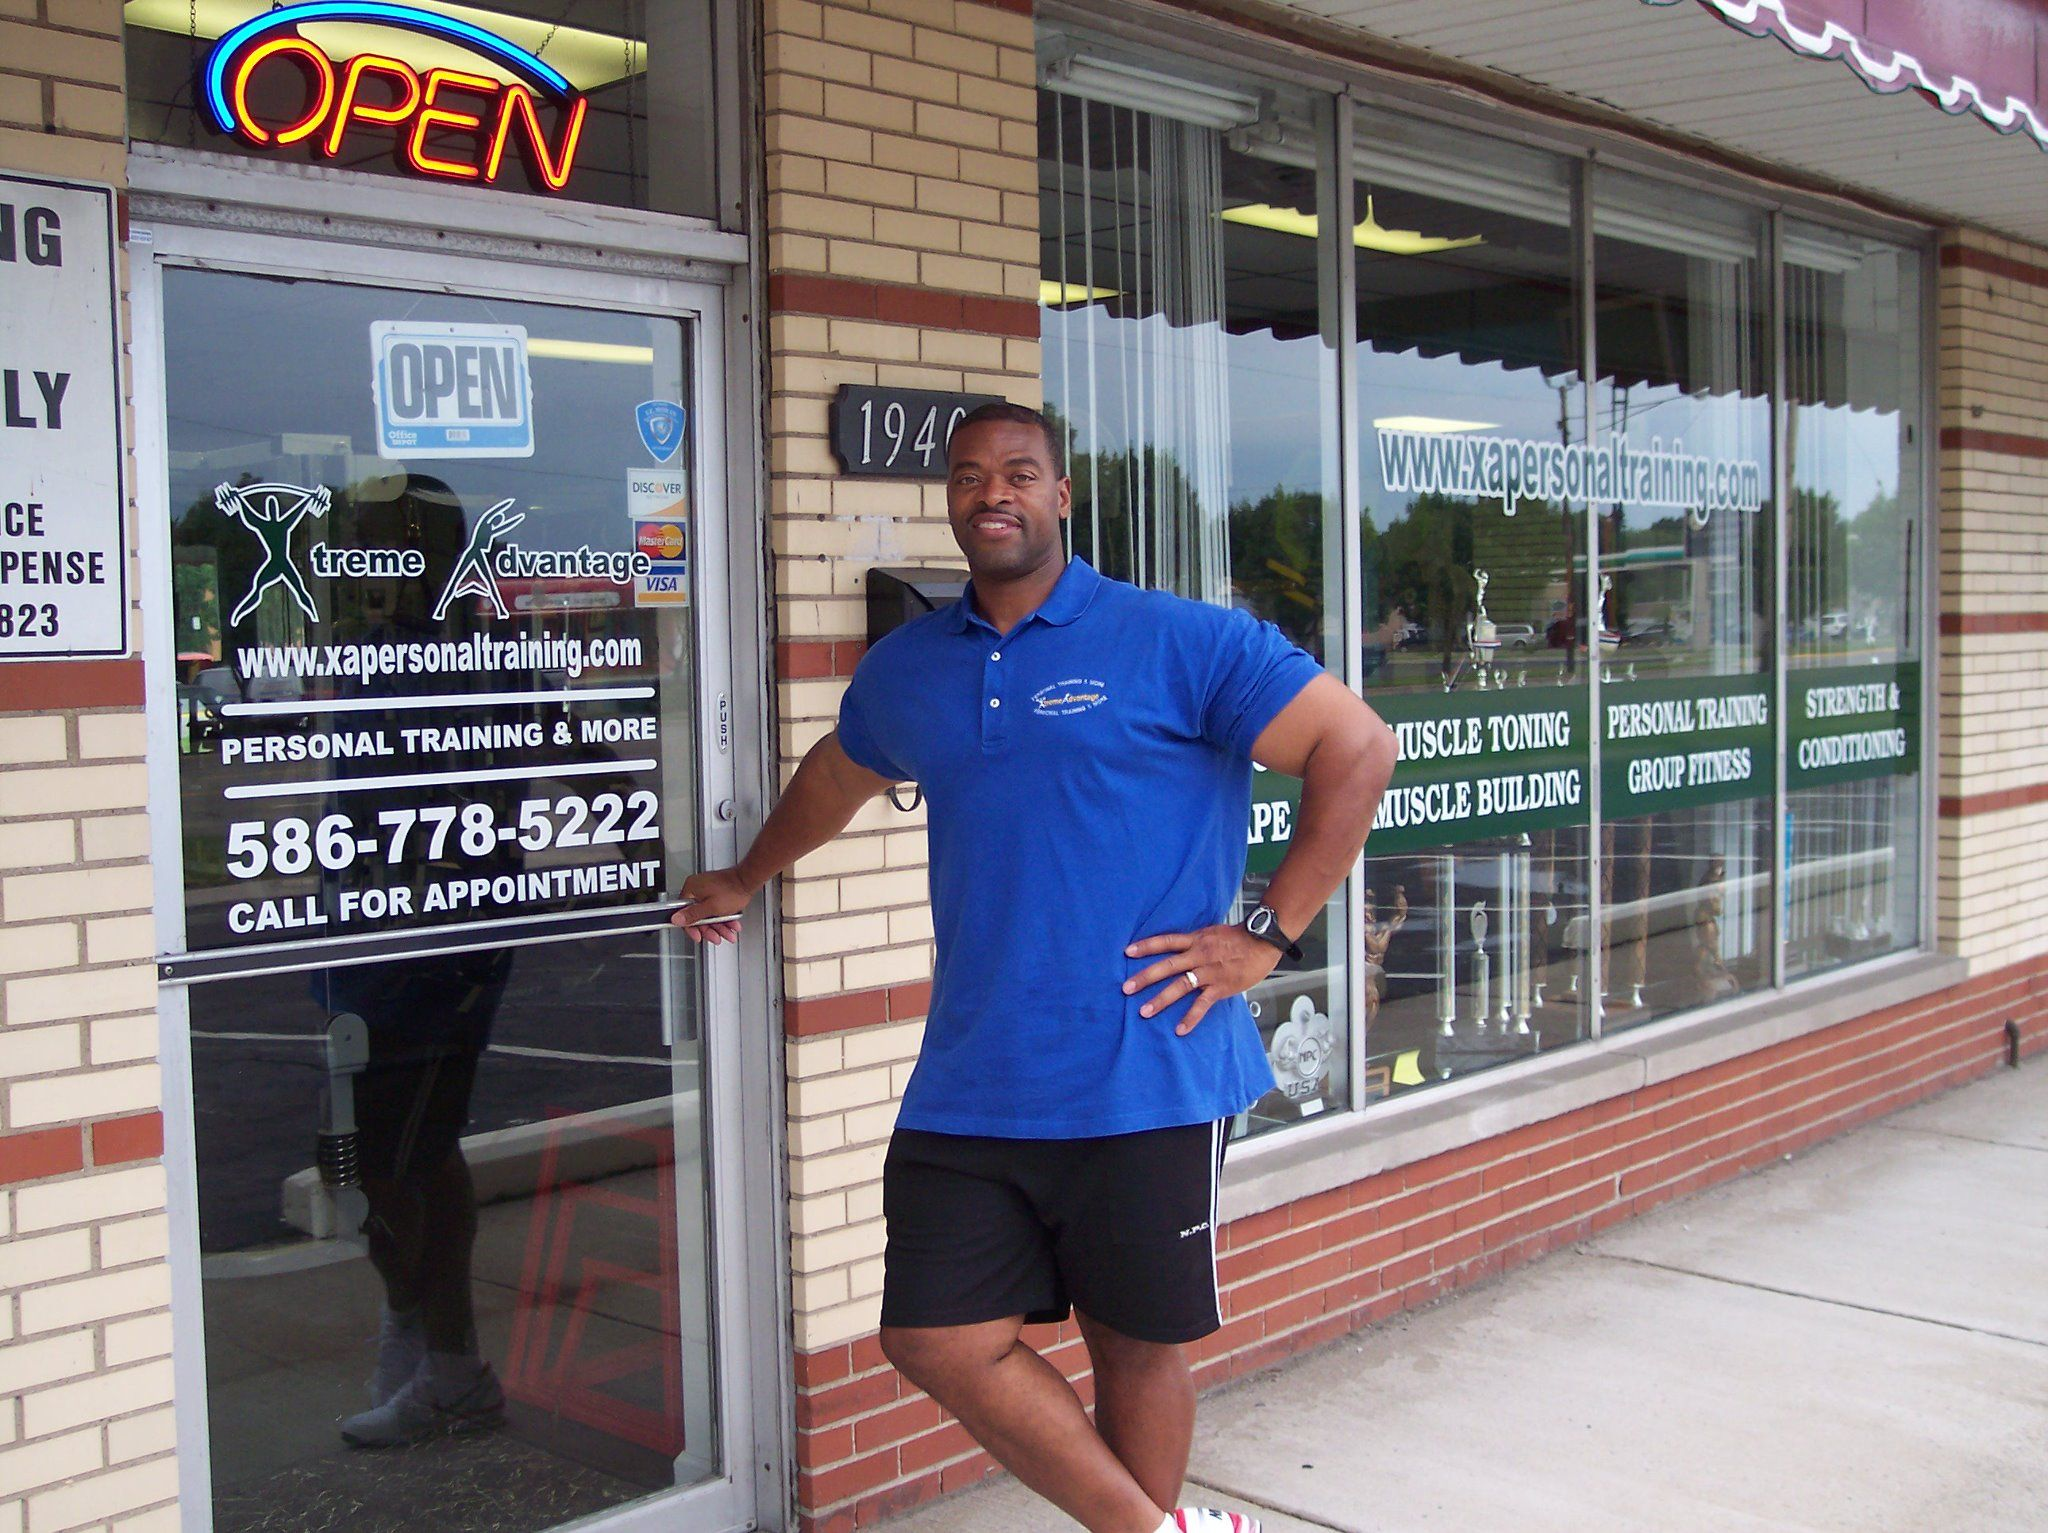 Xtreme Advantage S Owner Harold Irby Is A Mr Michigan Bodybuilding Champion With Many State Titles A Personal Training Studio Personal Training Bodybuilding